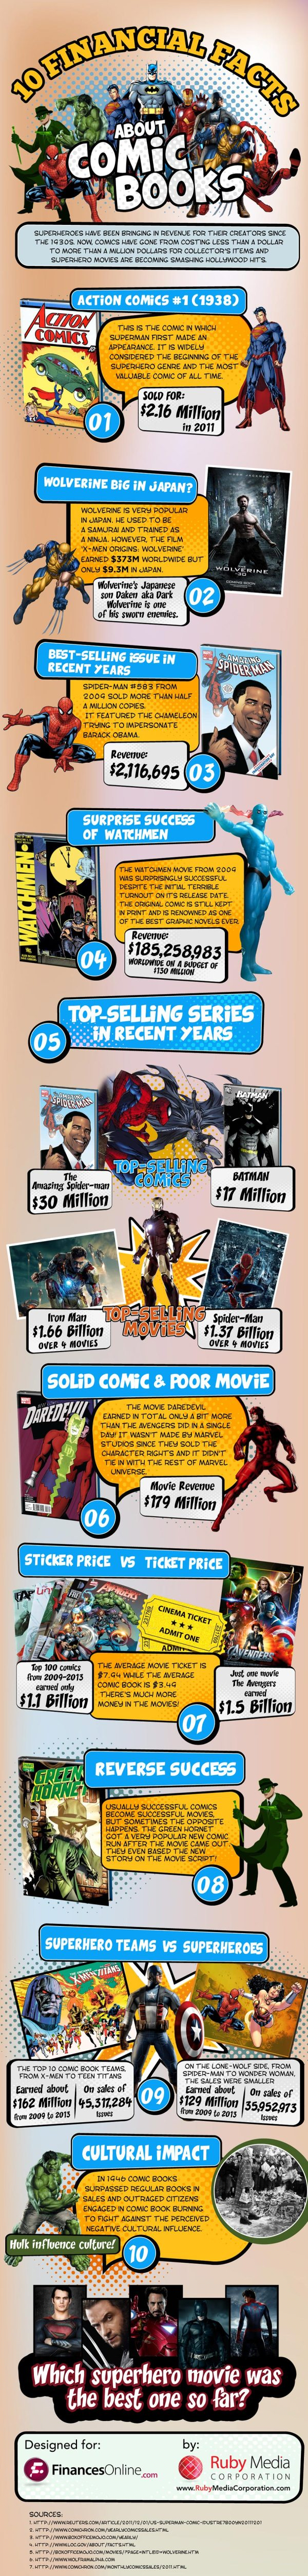 10 Financial Facts About The Comic Book Industry